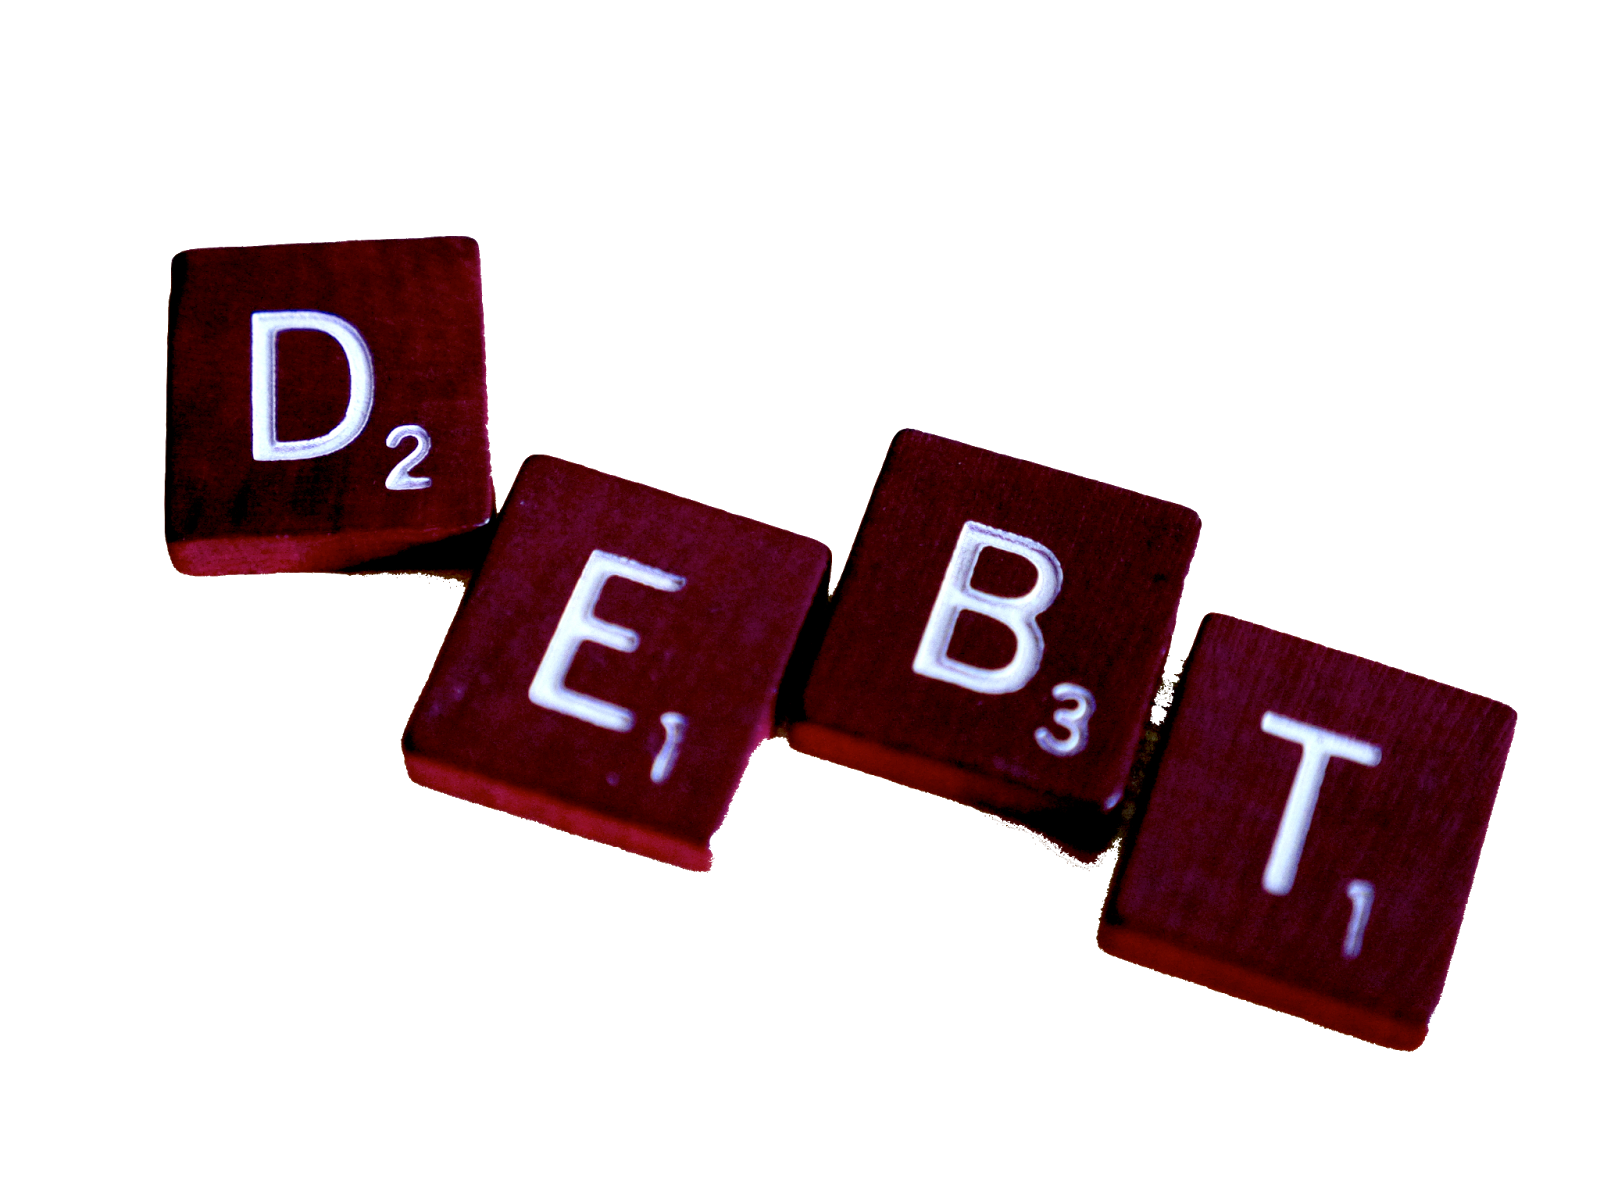 Seek out way to reduce monthly expenses to pay off debt faster